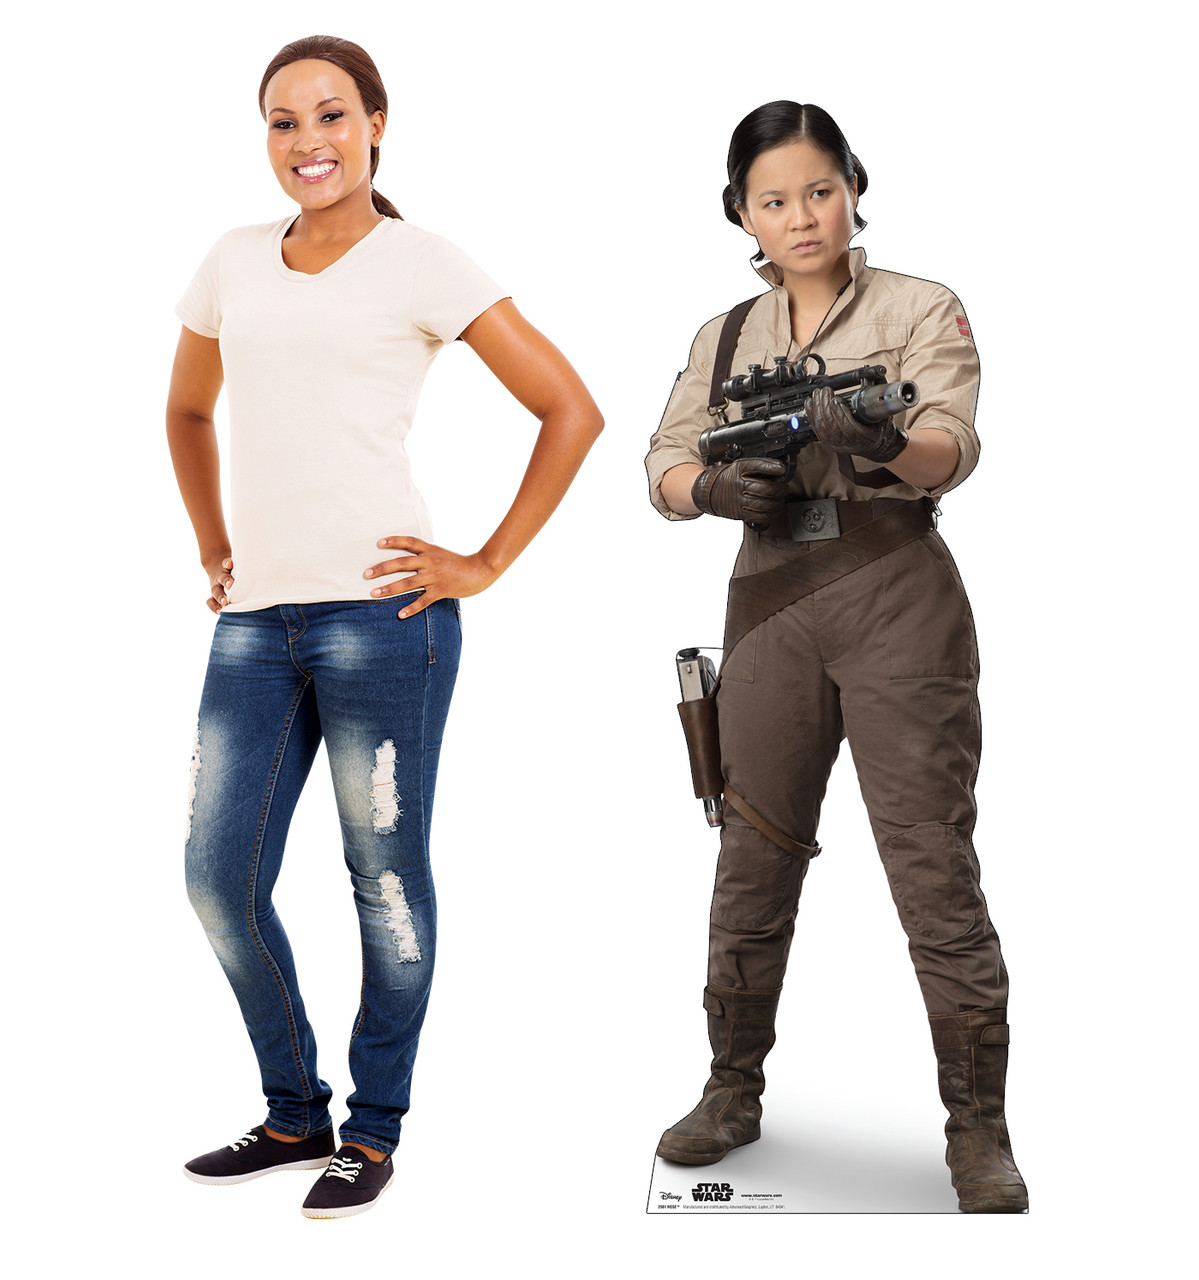 Life-size cardboard standee of Rose™ (Star Wars IX) with model.